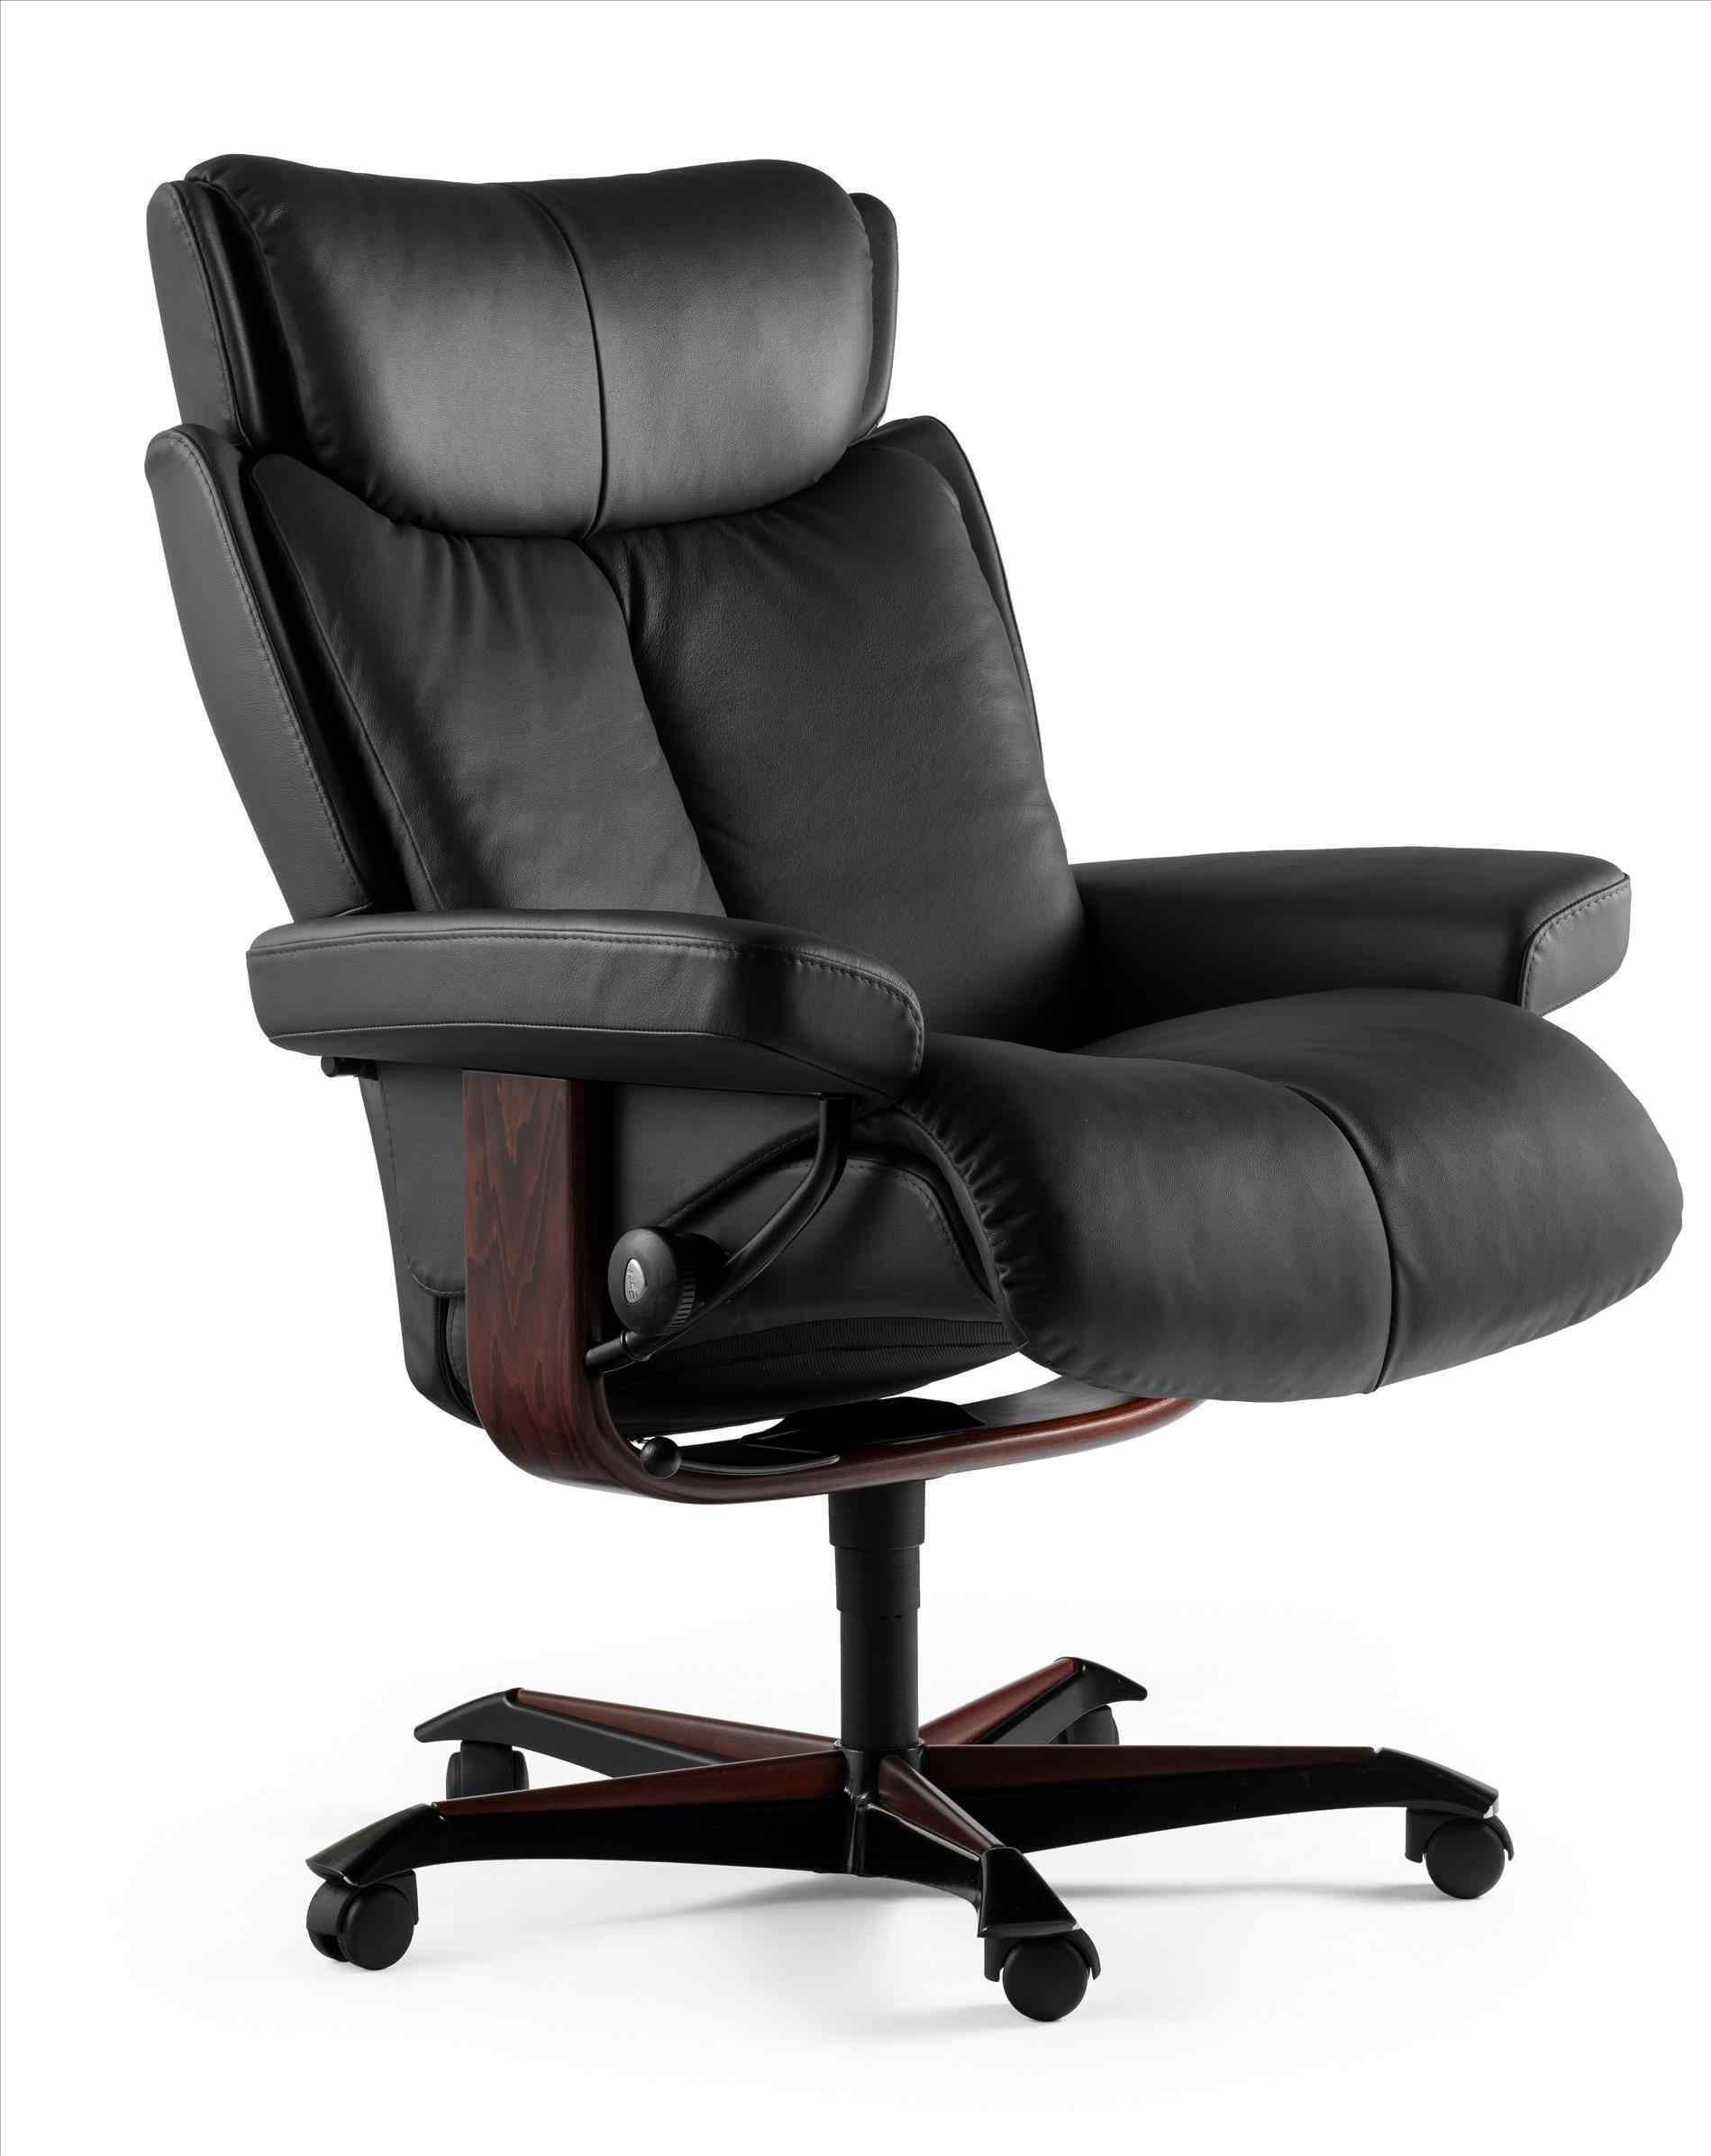 Elegant The Most Comfortable Chair Inspirational The Most Comfortable Chair 58 For Your Inpi Luxury Office Chairs Comfortable Chair Design Comfy Office Chair